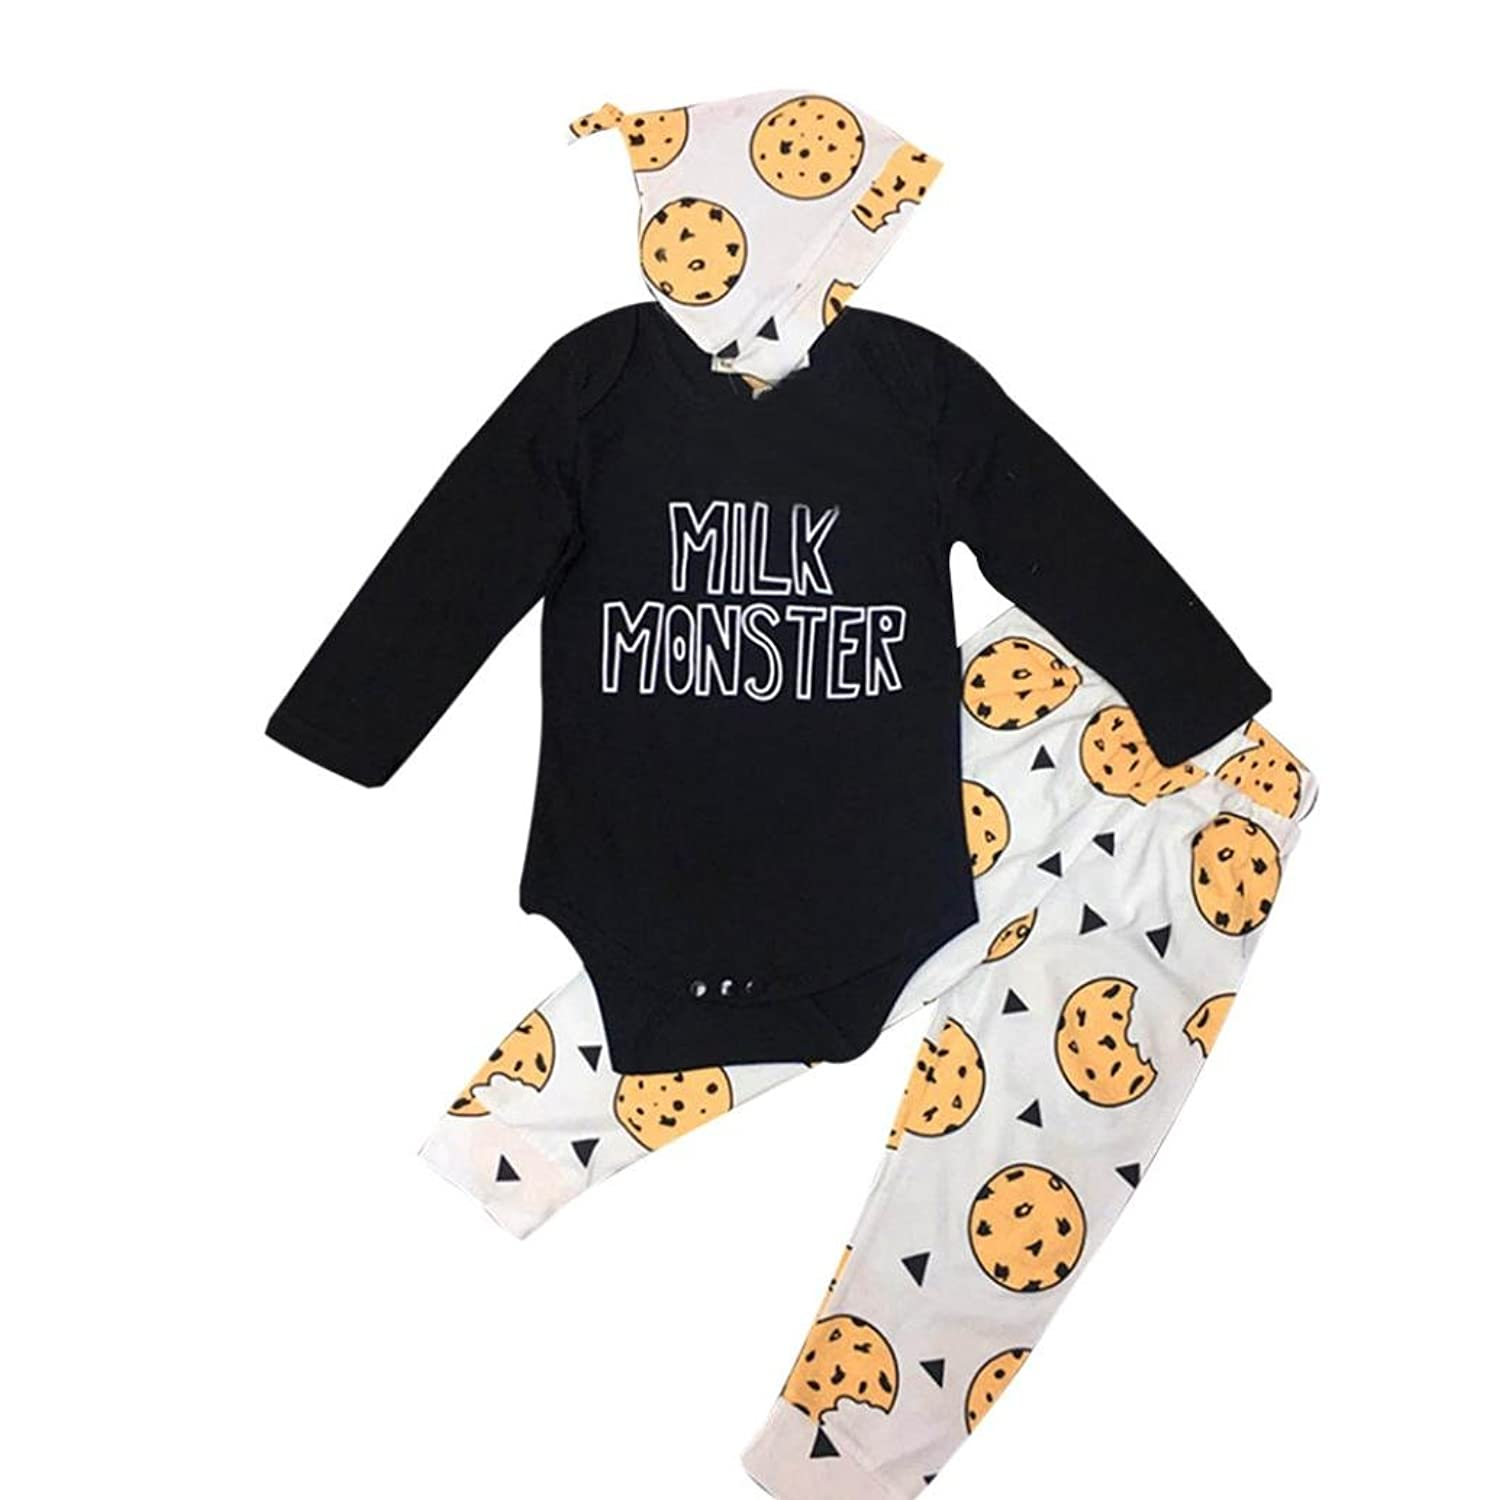 igemy newborn baby boy girl clothes letter tops romper pants hat outfits 3pcs set